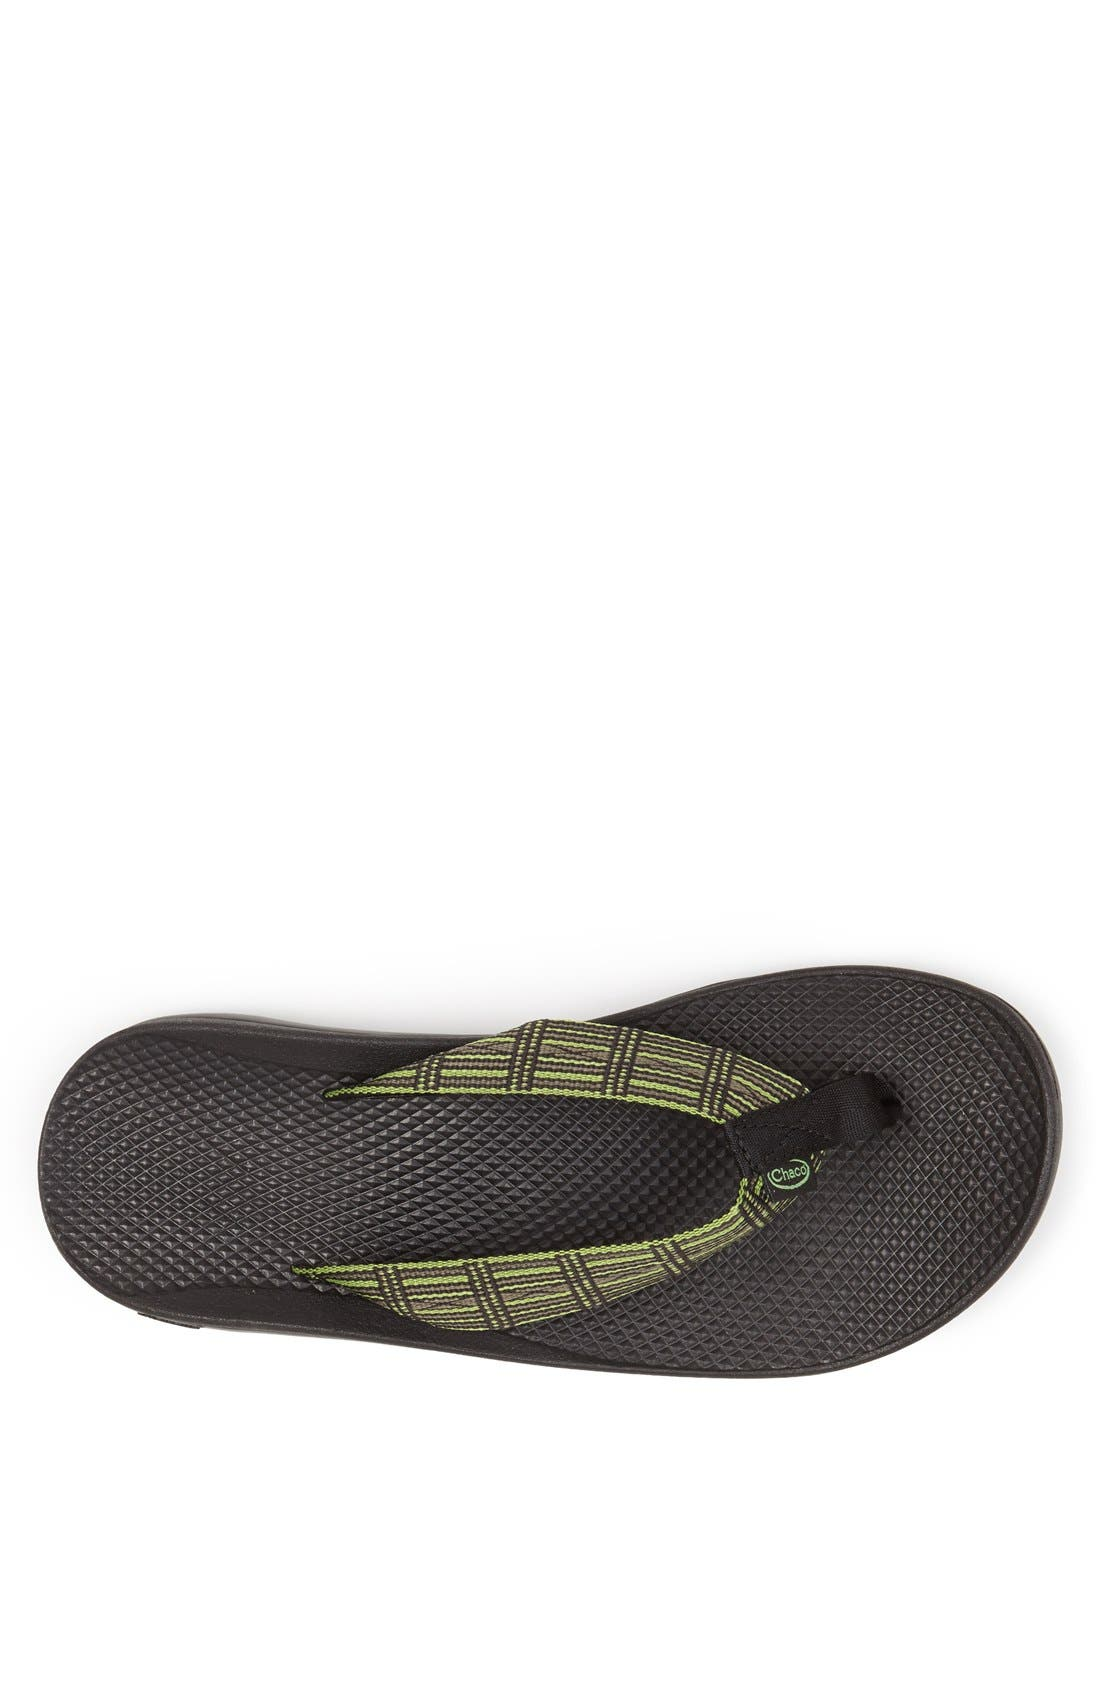 Alternate Image 3  - Chaco 'Flip Vibe' Flip Flop (Men)